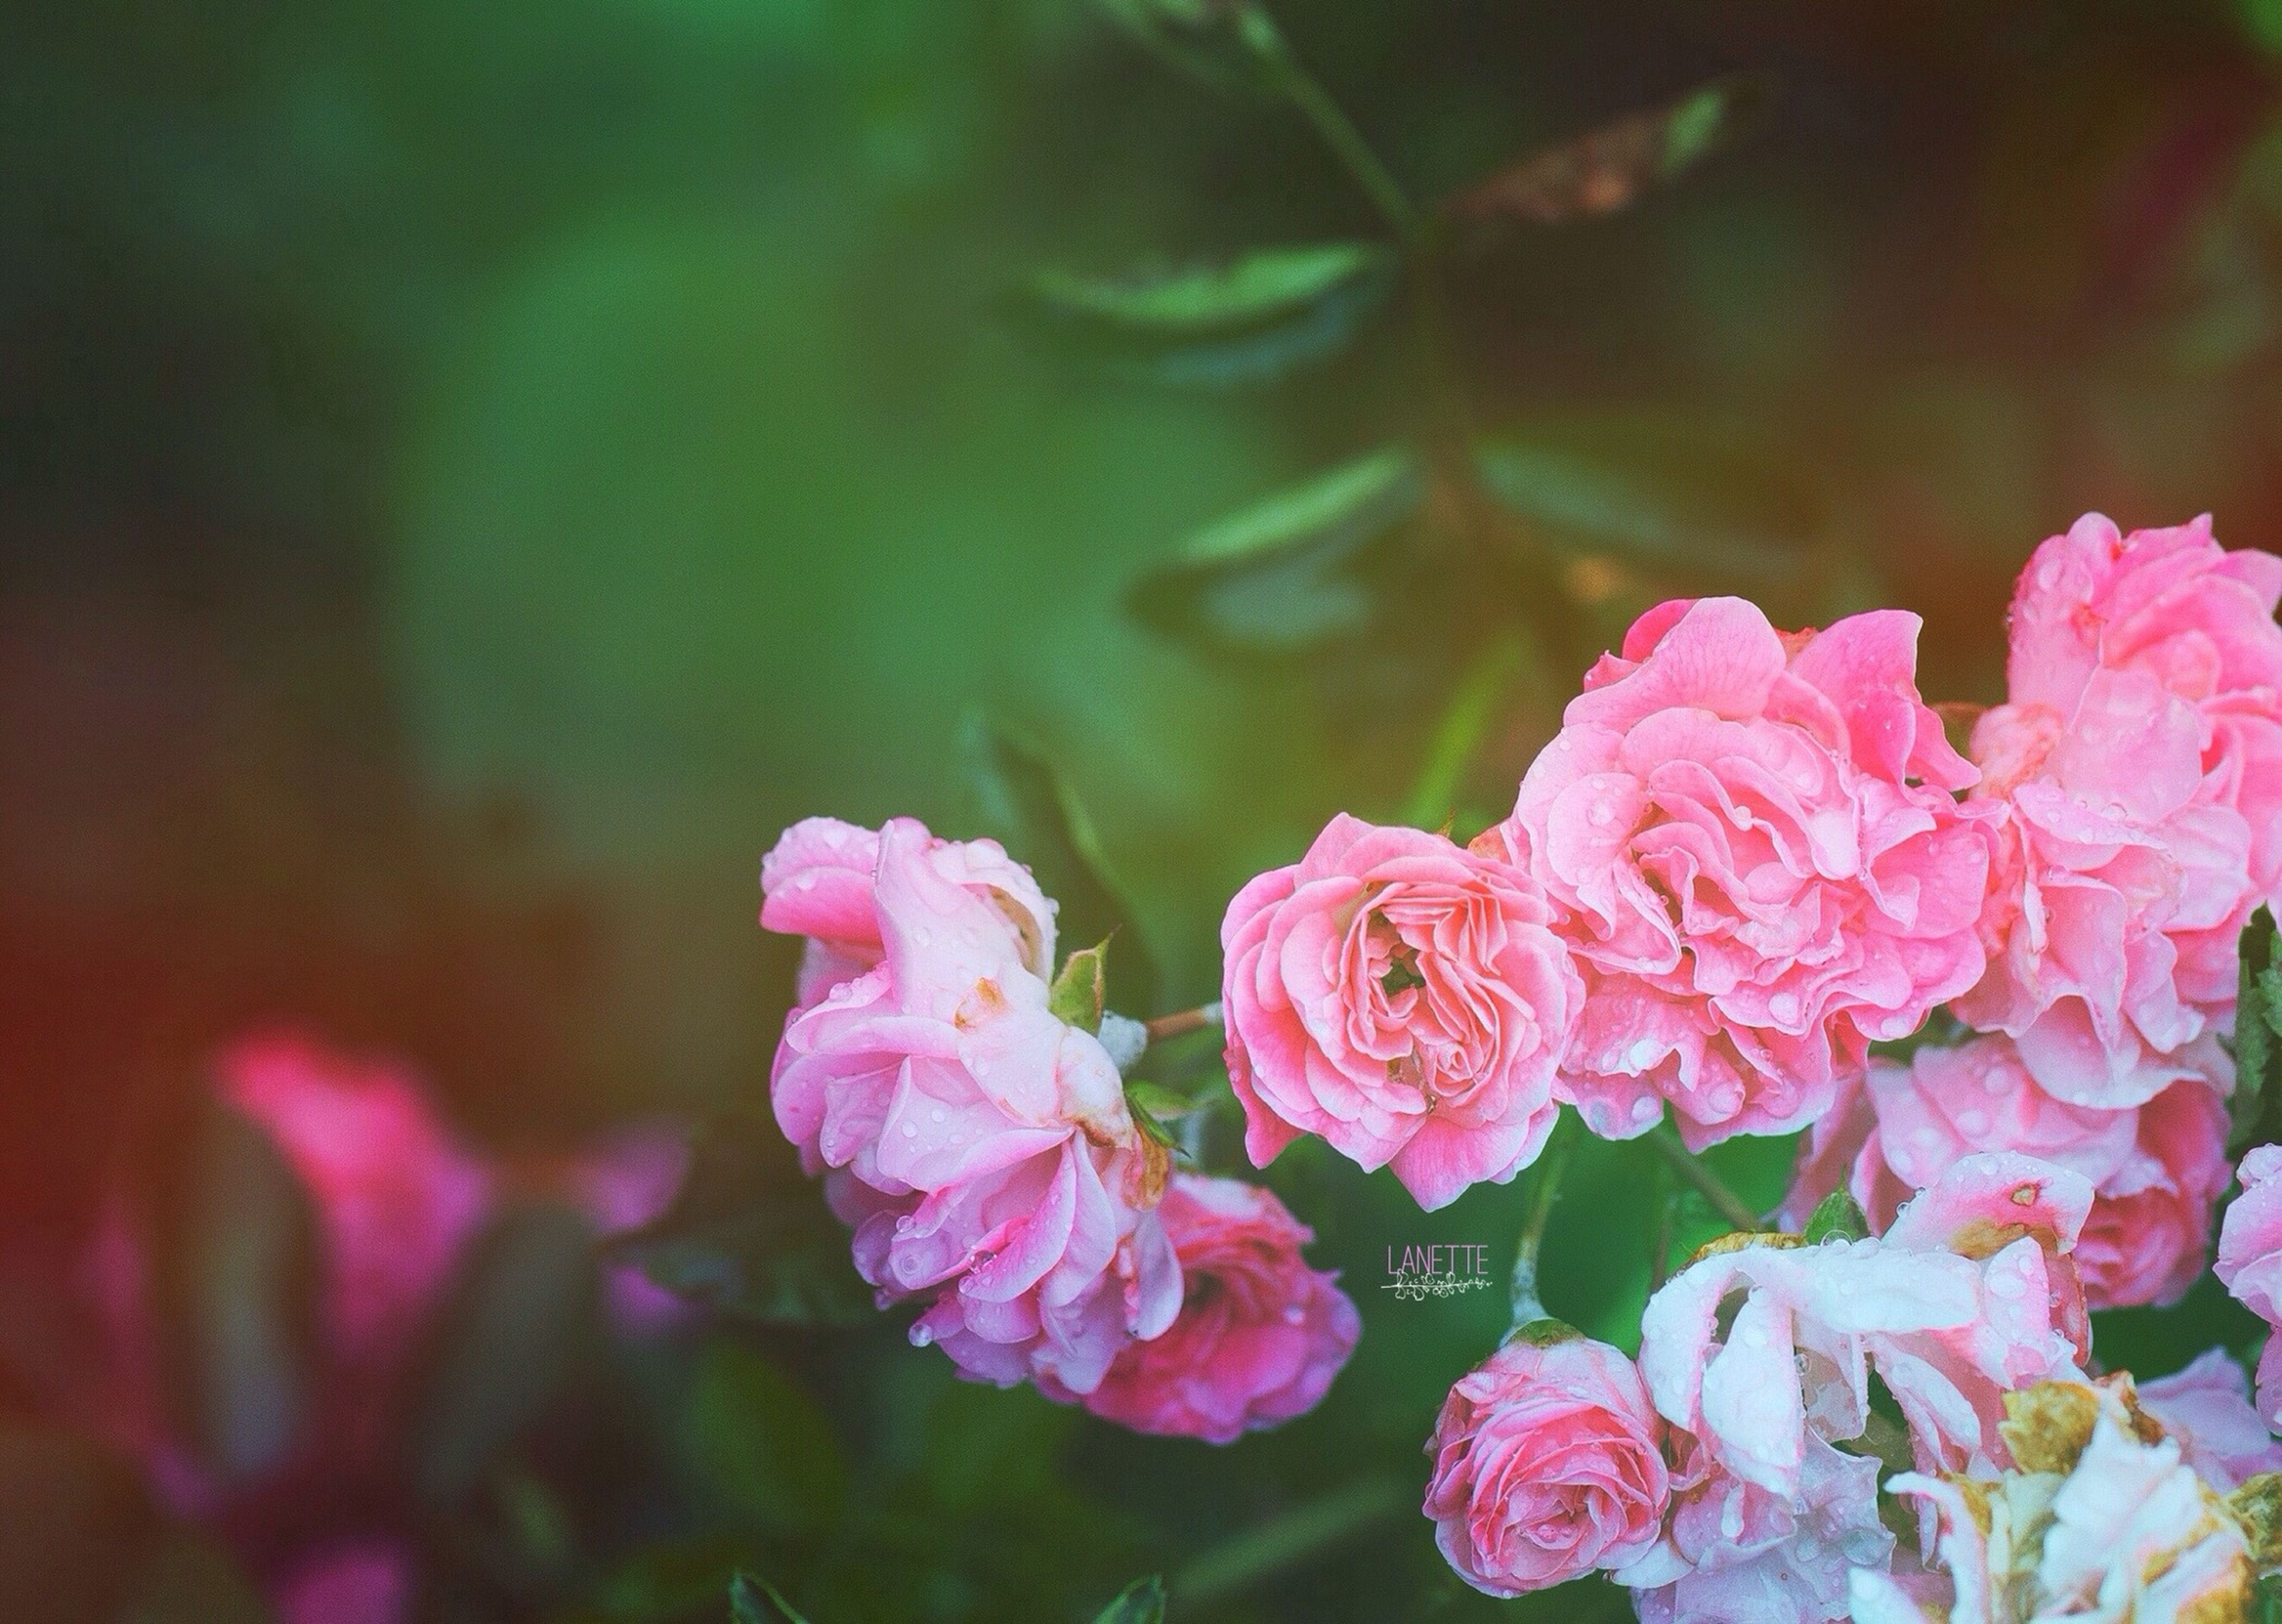 flower, petal, fragility, freshness, flower head, pink color, growth, beauty in nature, close-up, focus on foreground, blooming, nature, plant, rose - flower, in bloom, selective focus, pink, park - man made space, blossom, outdoors